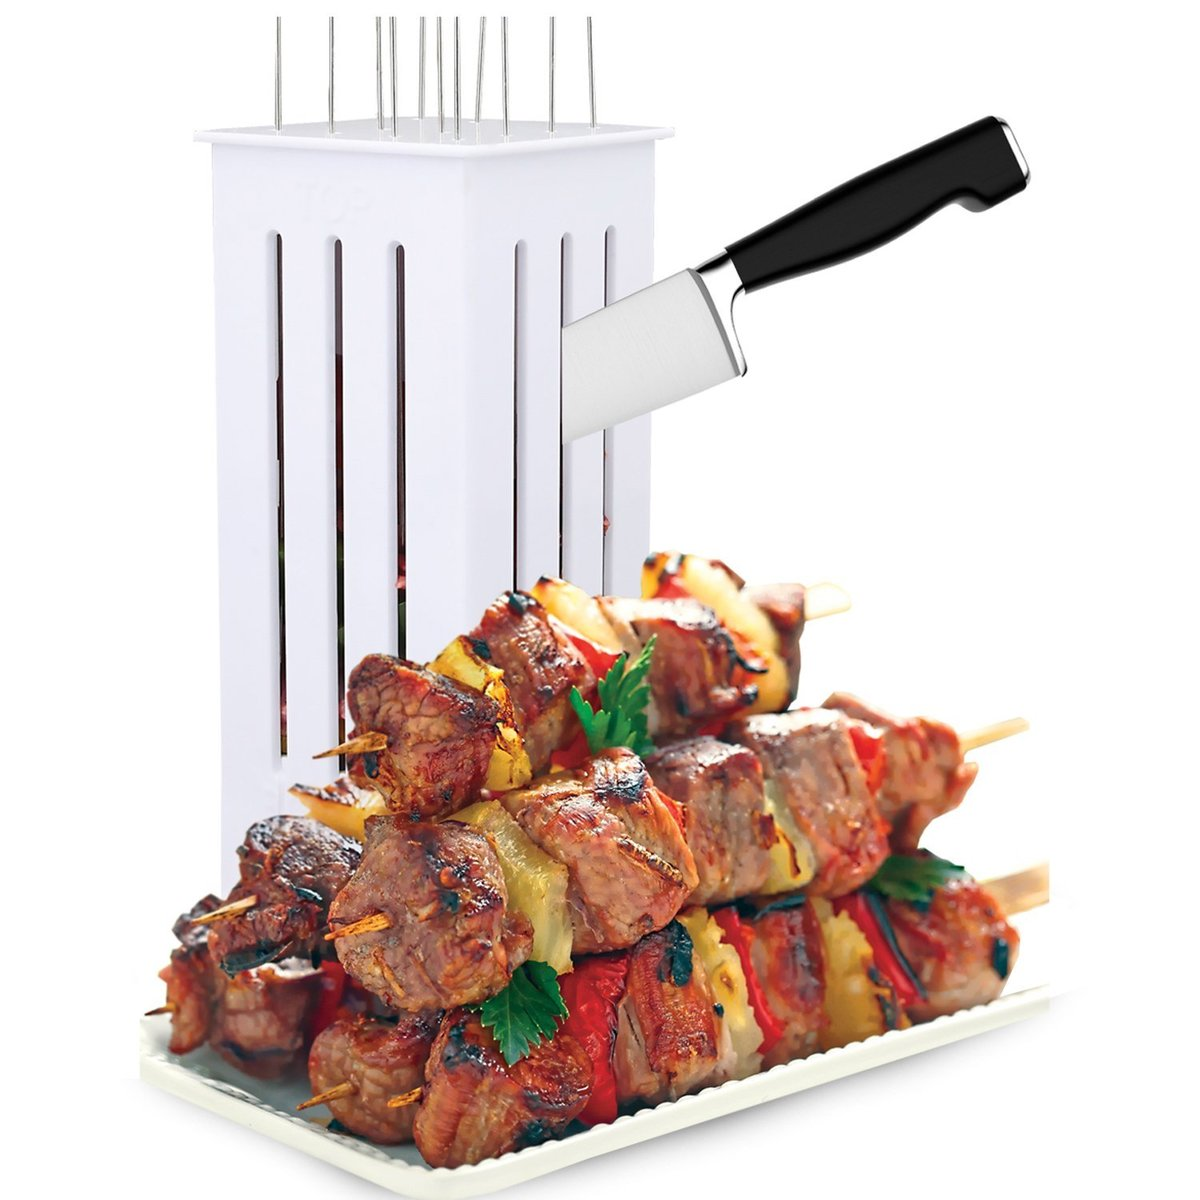 Easy Barbecue Kebab Maker 16-holes Meat Grill Brochettes Skewer Machine Bbq Accessories Tools Set With 32 Bamboo Skewers